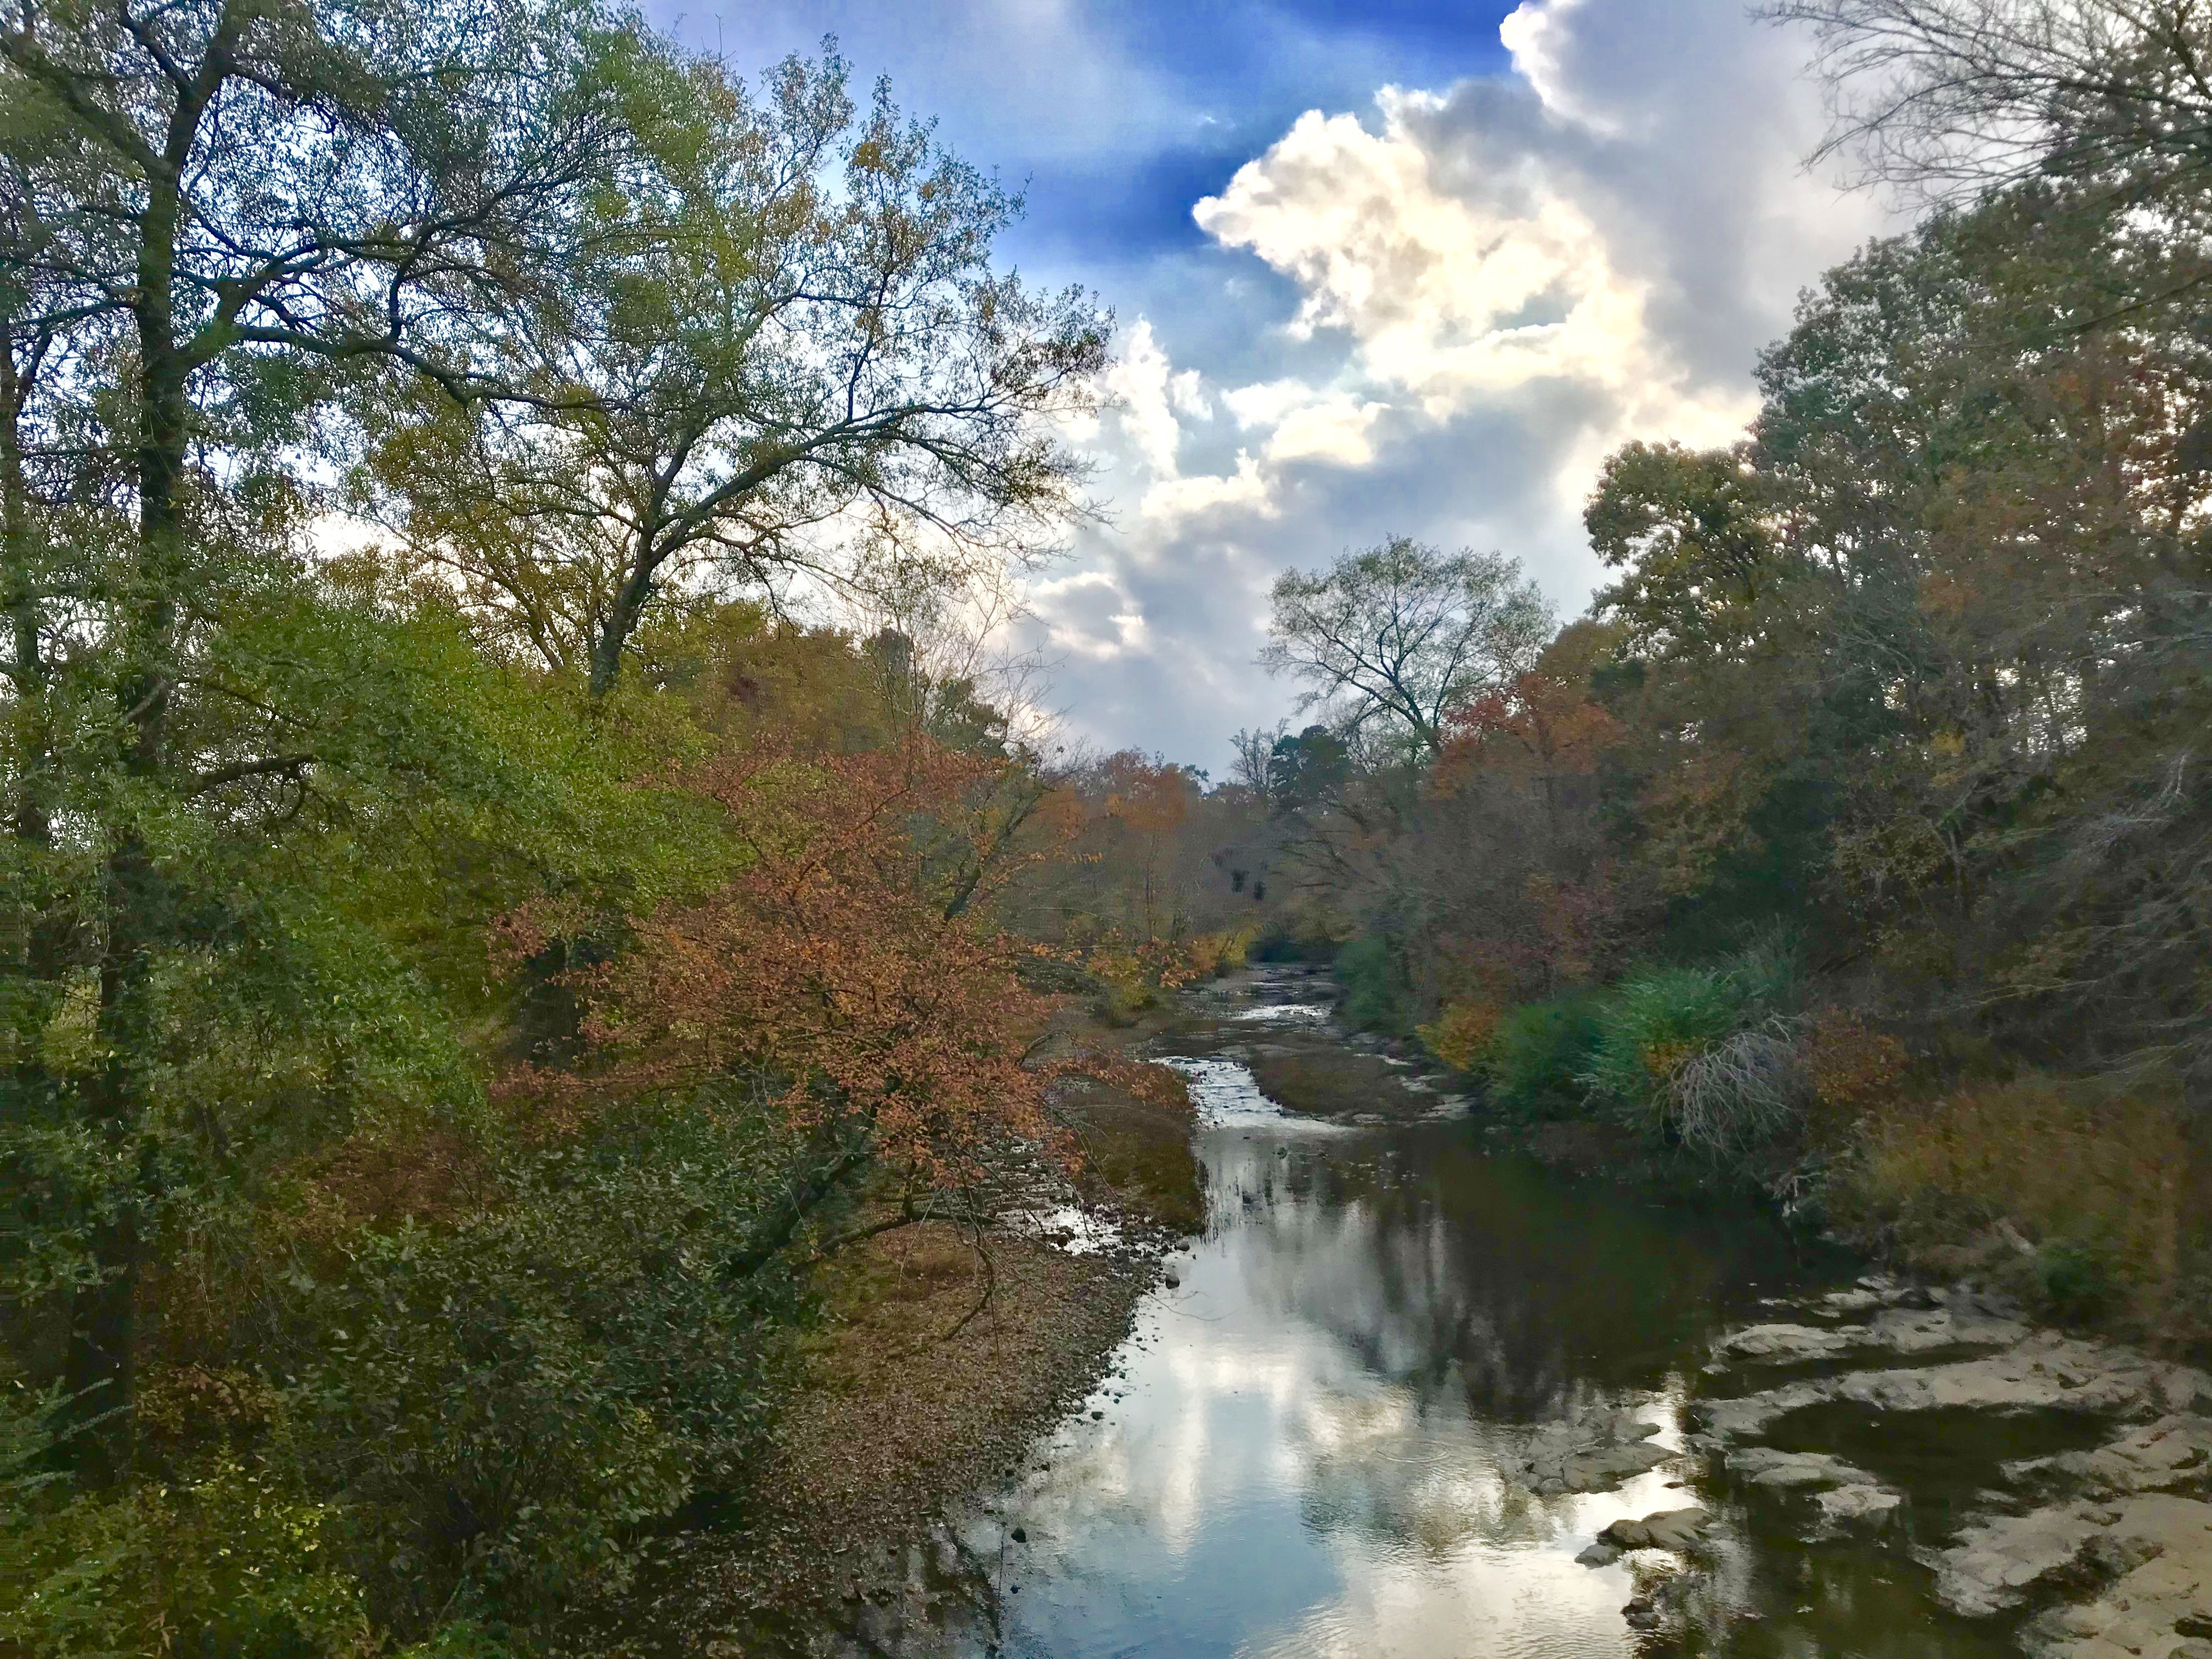 Arkansas Nature Autumn With Images Nature Outdoor Water